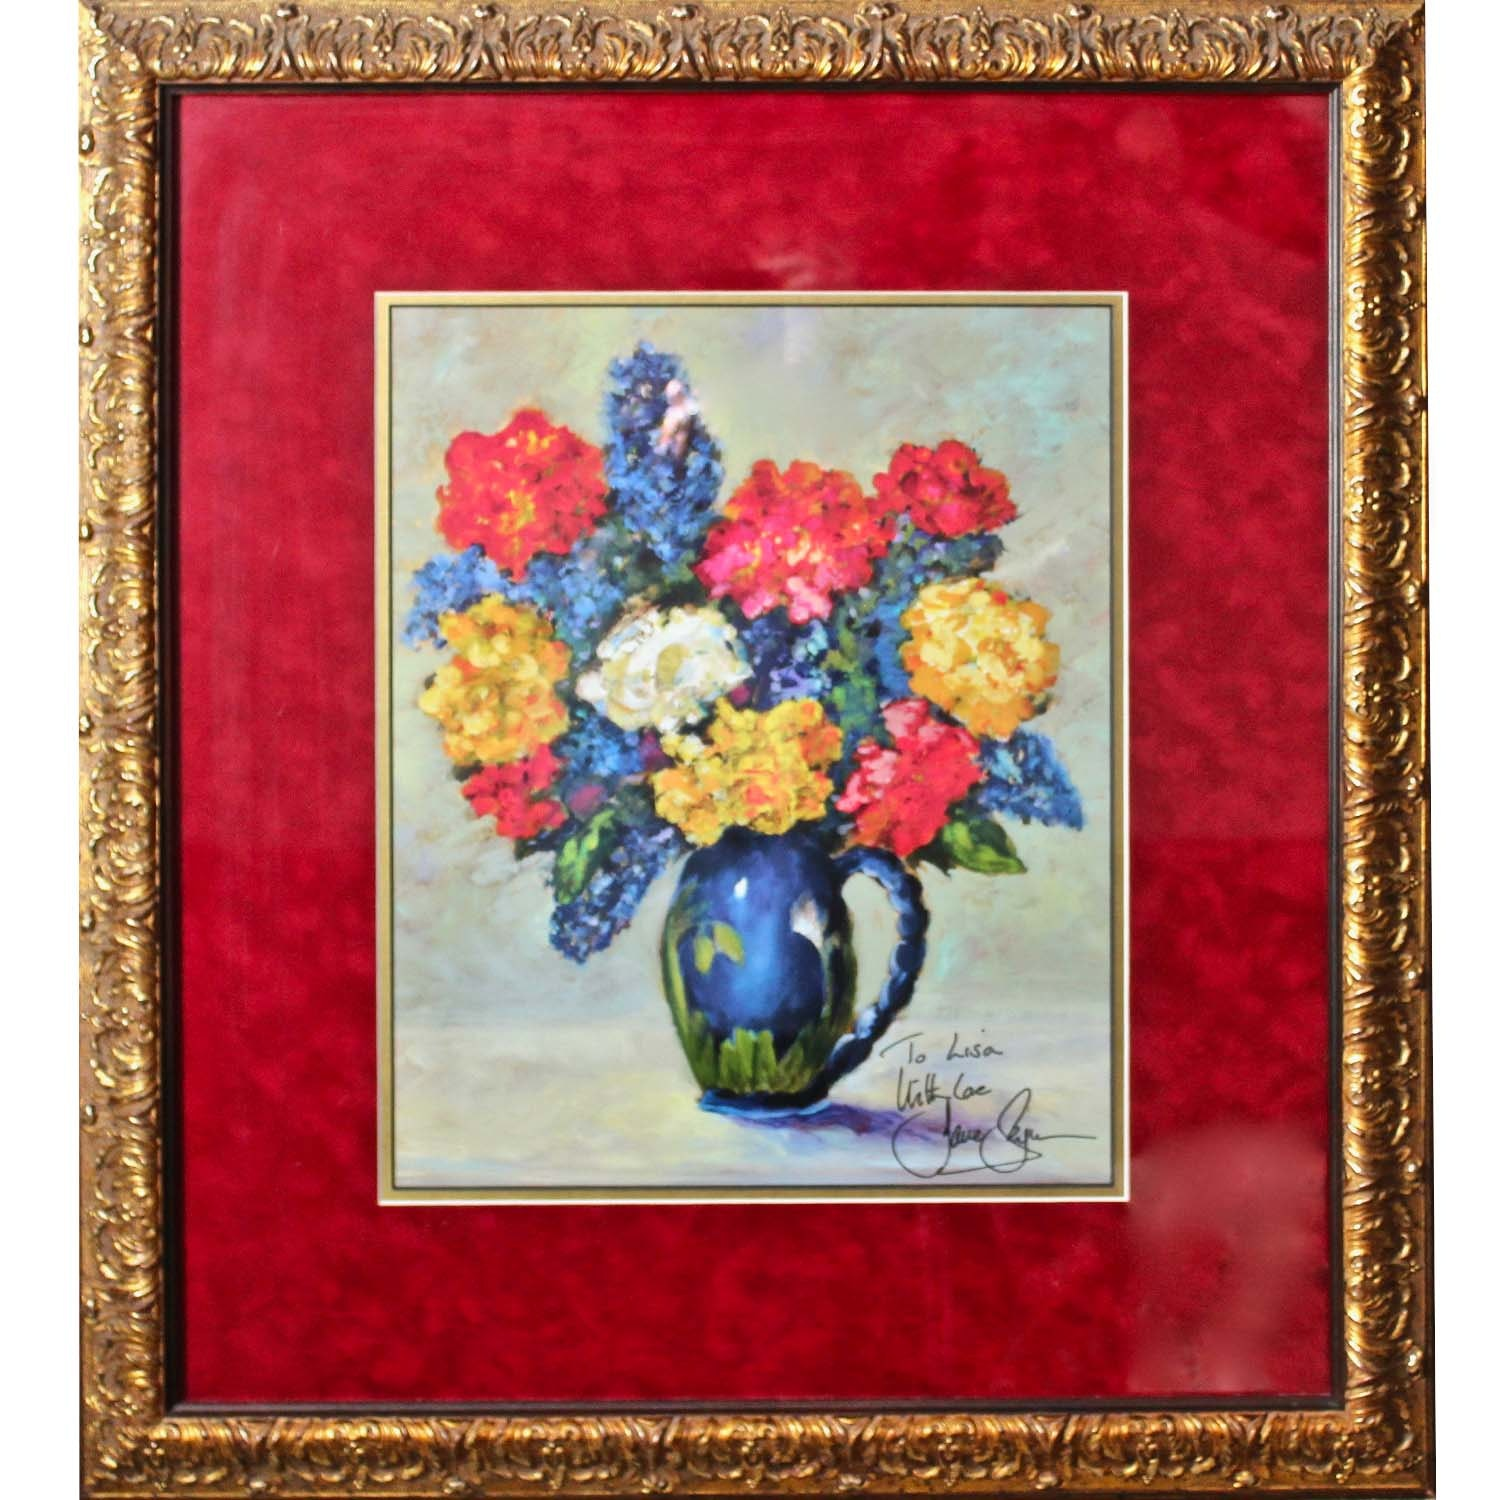 Jane Seymour Signed Offset Lithograph of Still LIfe